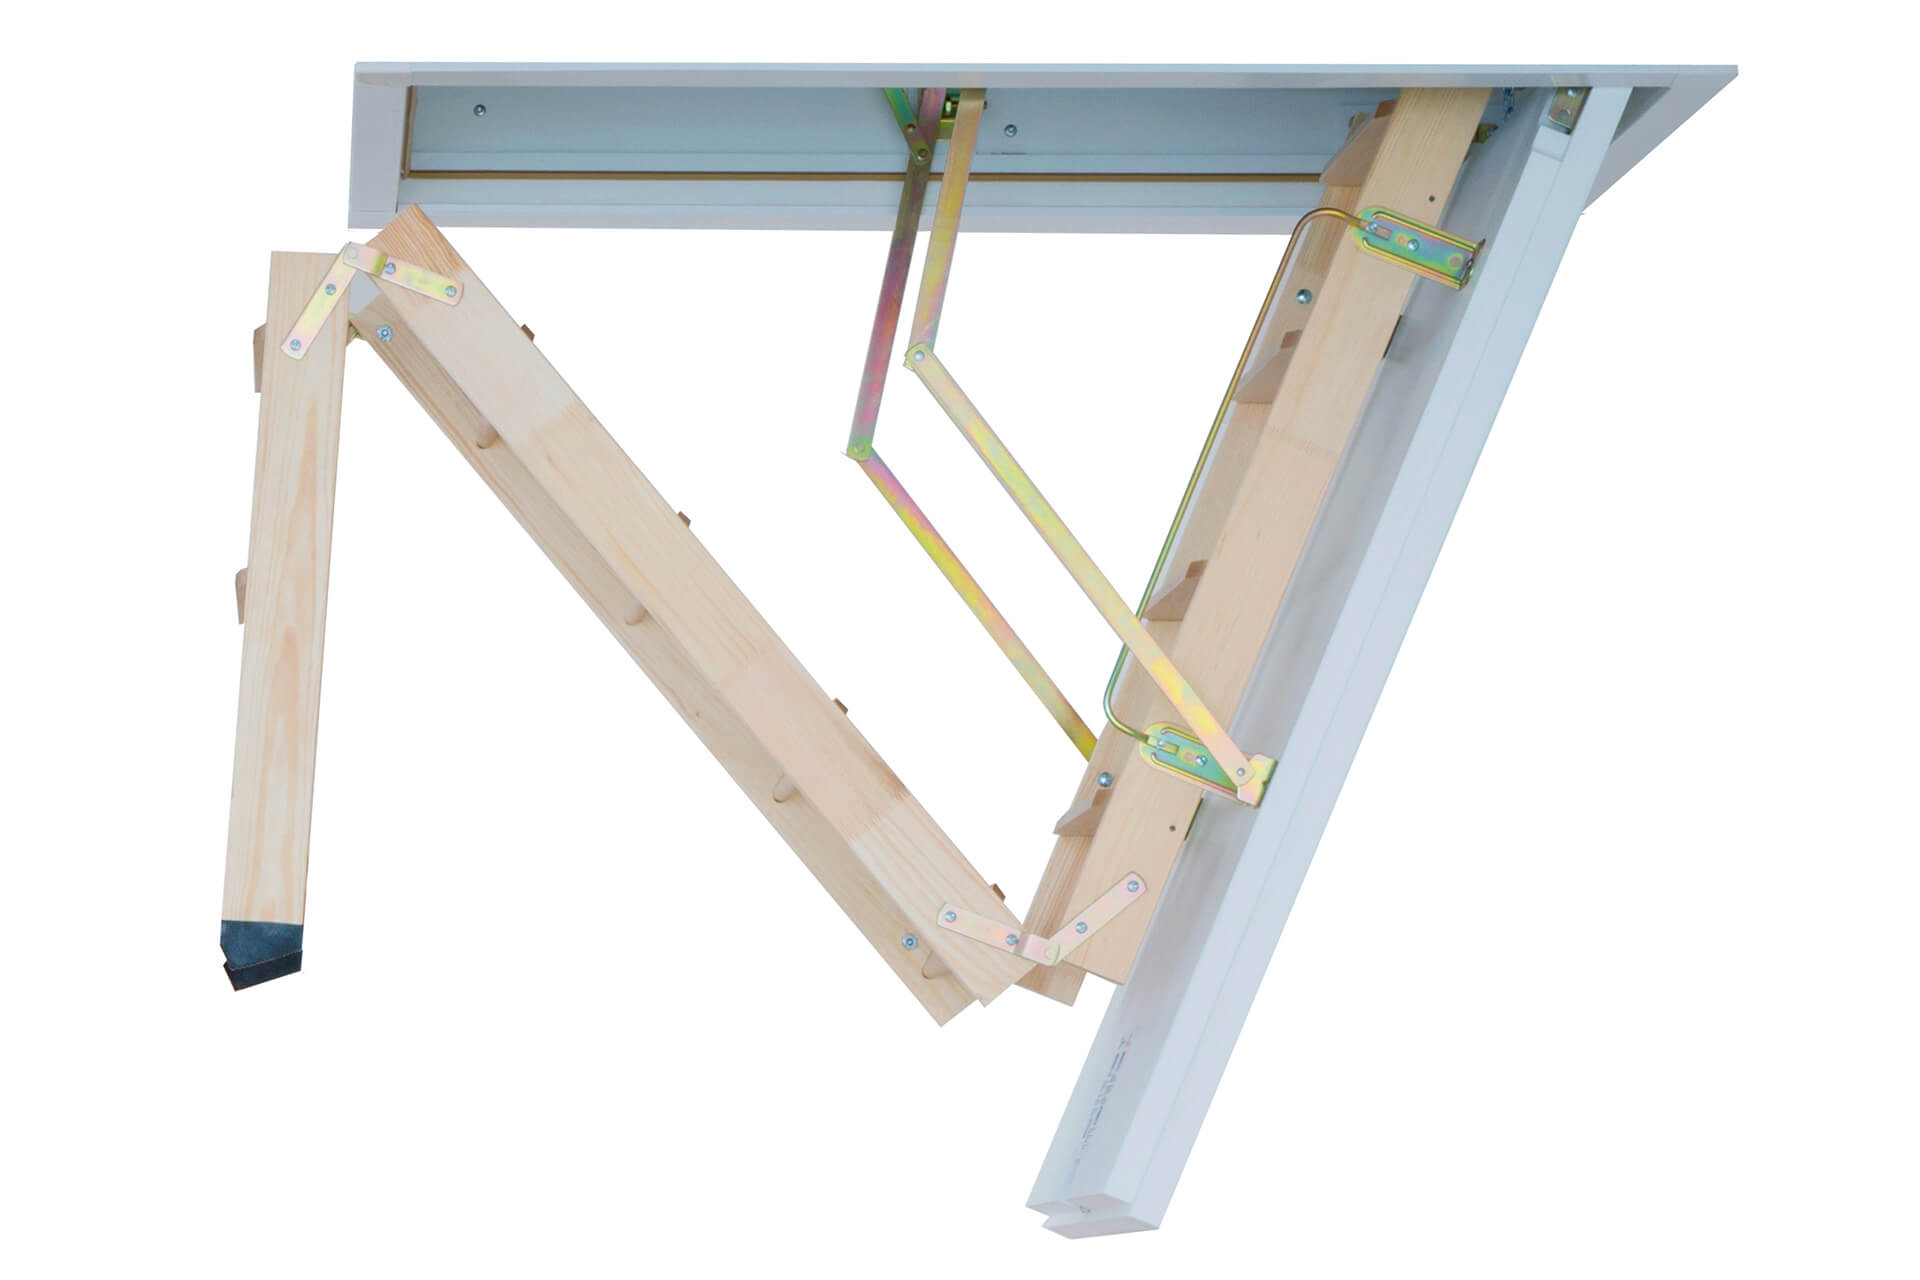 Cadet 3 wooden loft ladder. 3 part folding ladder with insulated hatch. From Premier Loft Ladders